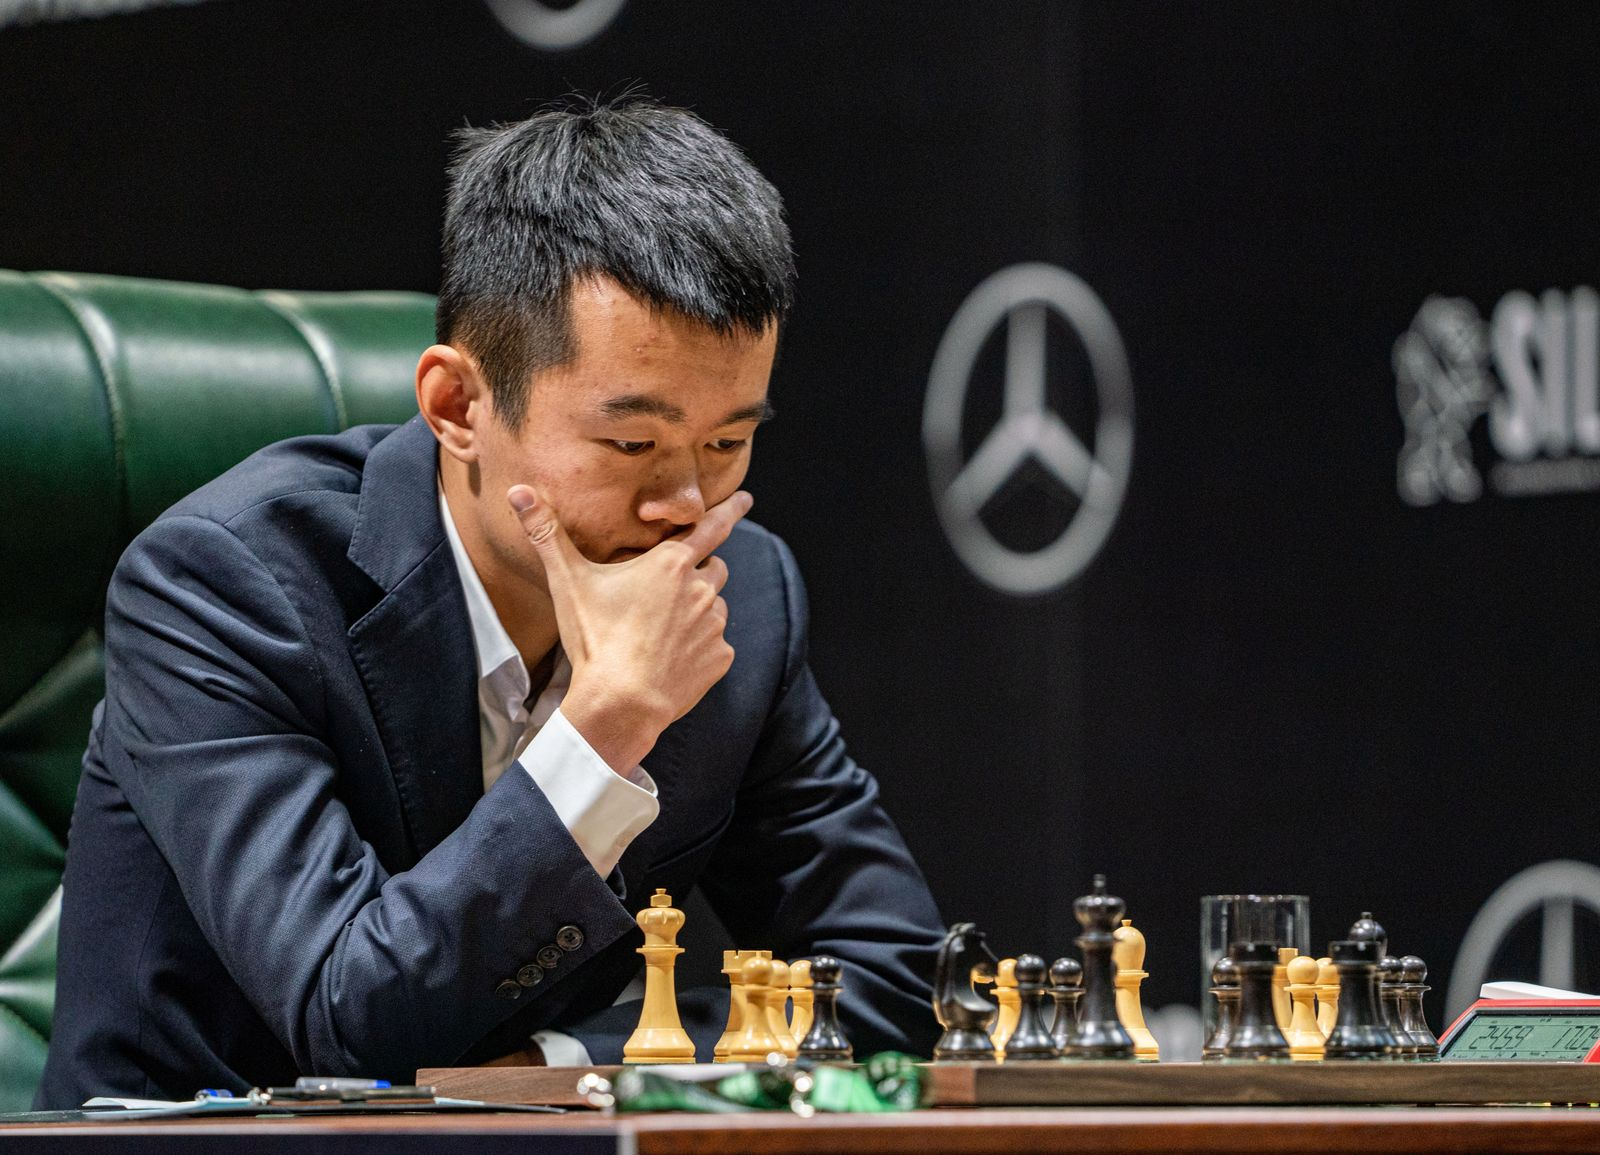 Chinese chess player Ding Liren looks on during the match at the Candidates Tournament in Yekaterinburg